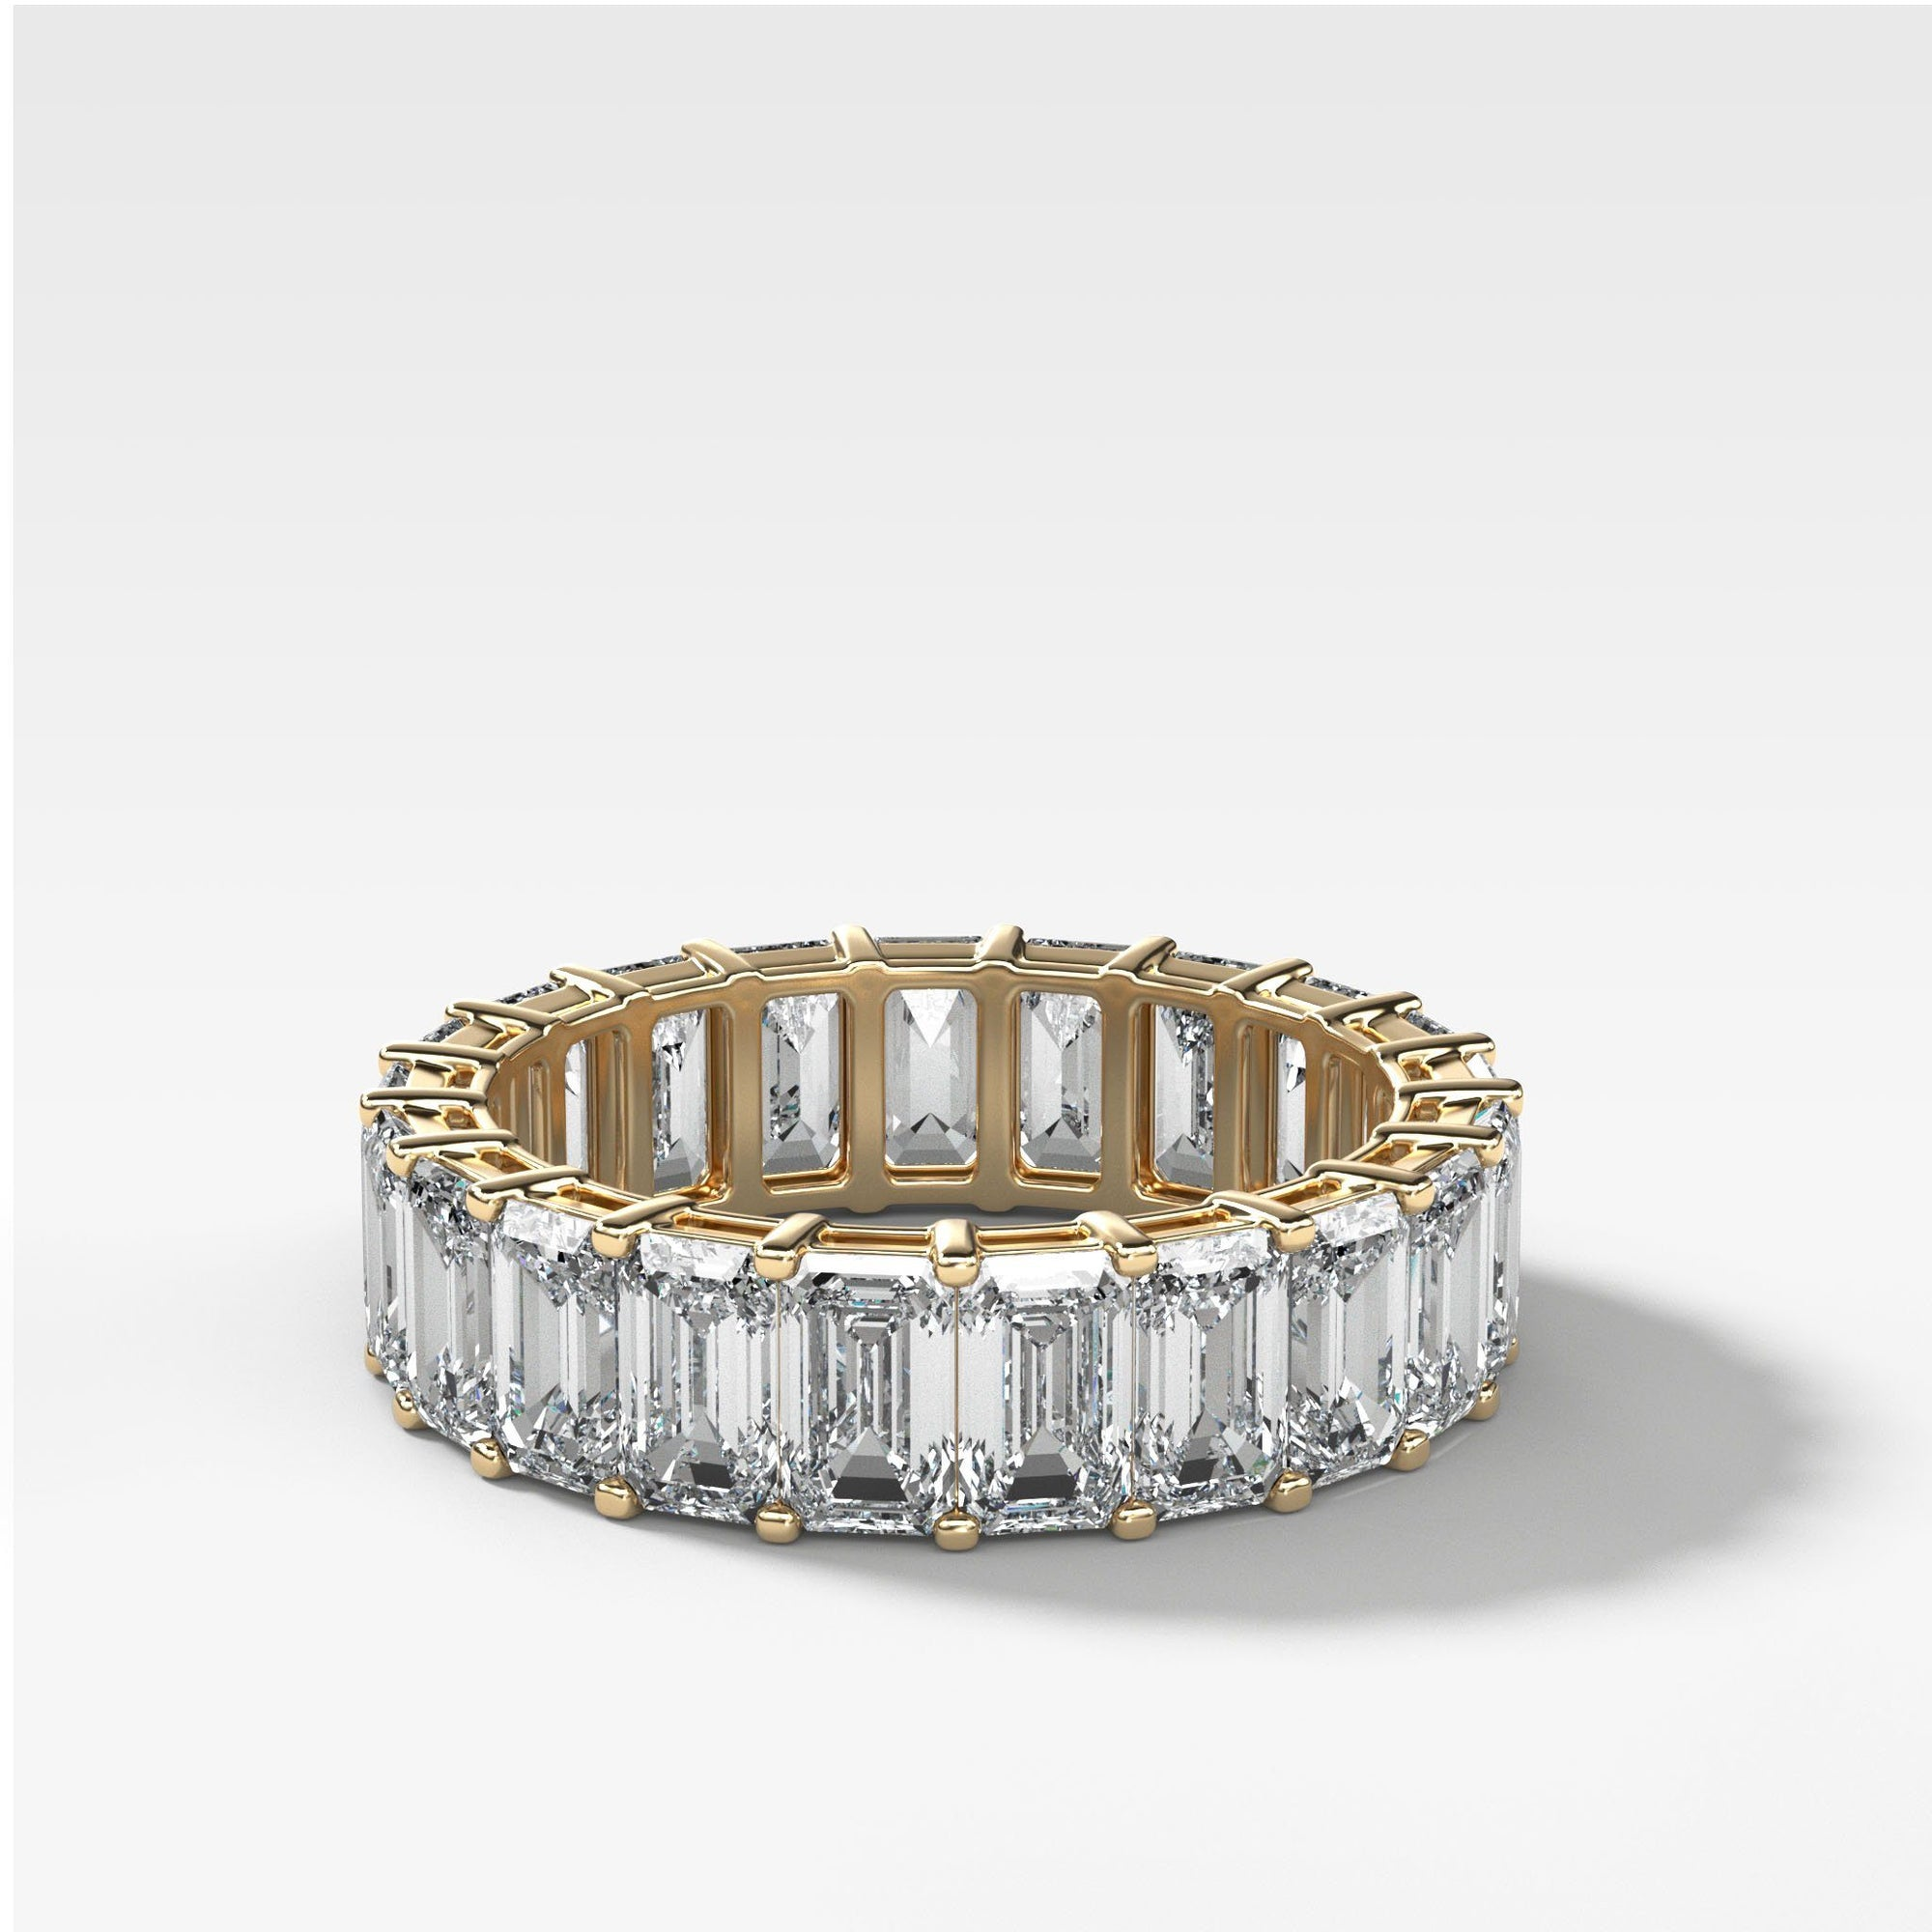 Emerald Cut Constellation Eternity Band available in Yellow Gold by Good Stone